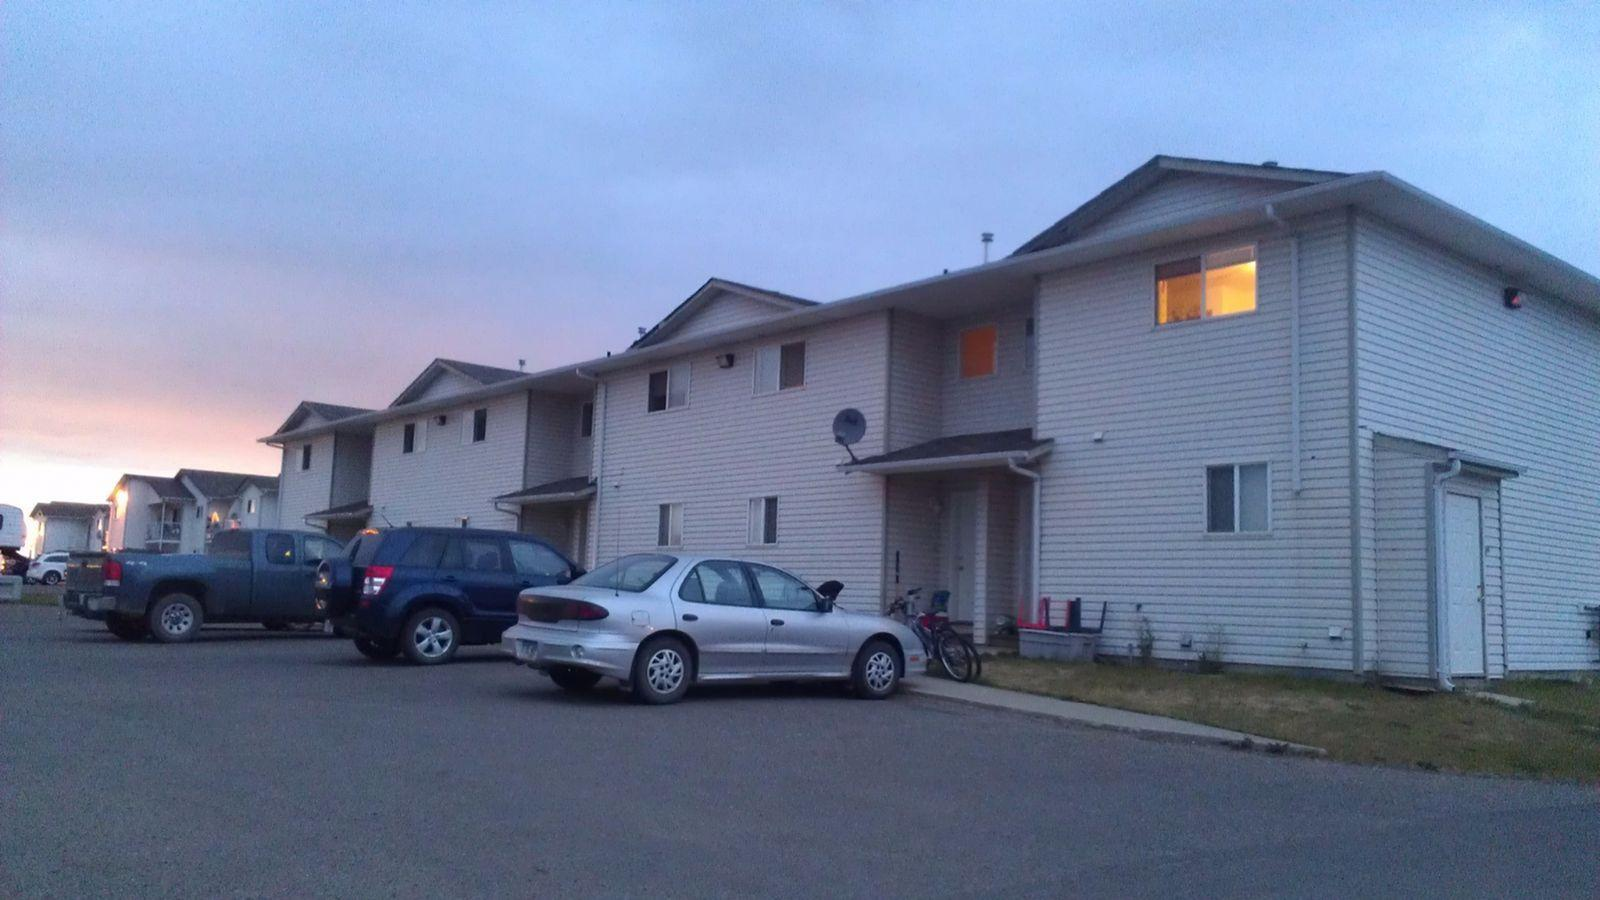 Willowview Terrace Apartment Homes Apartments photo #1